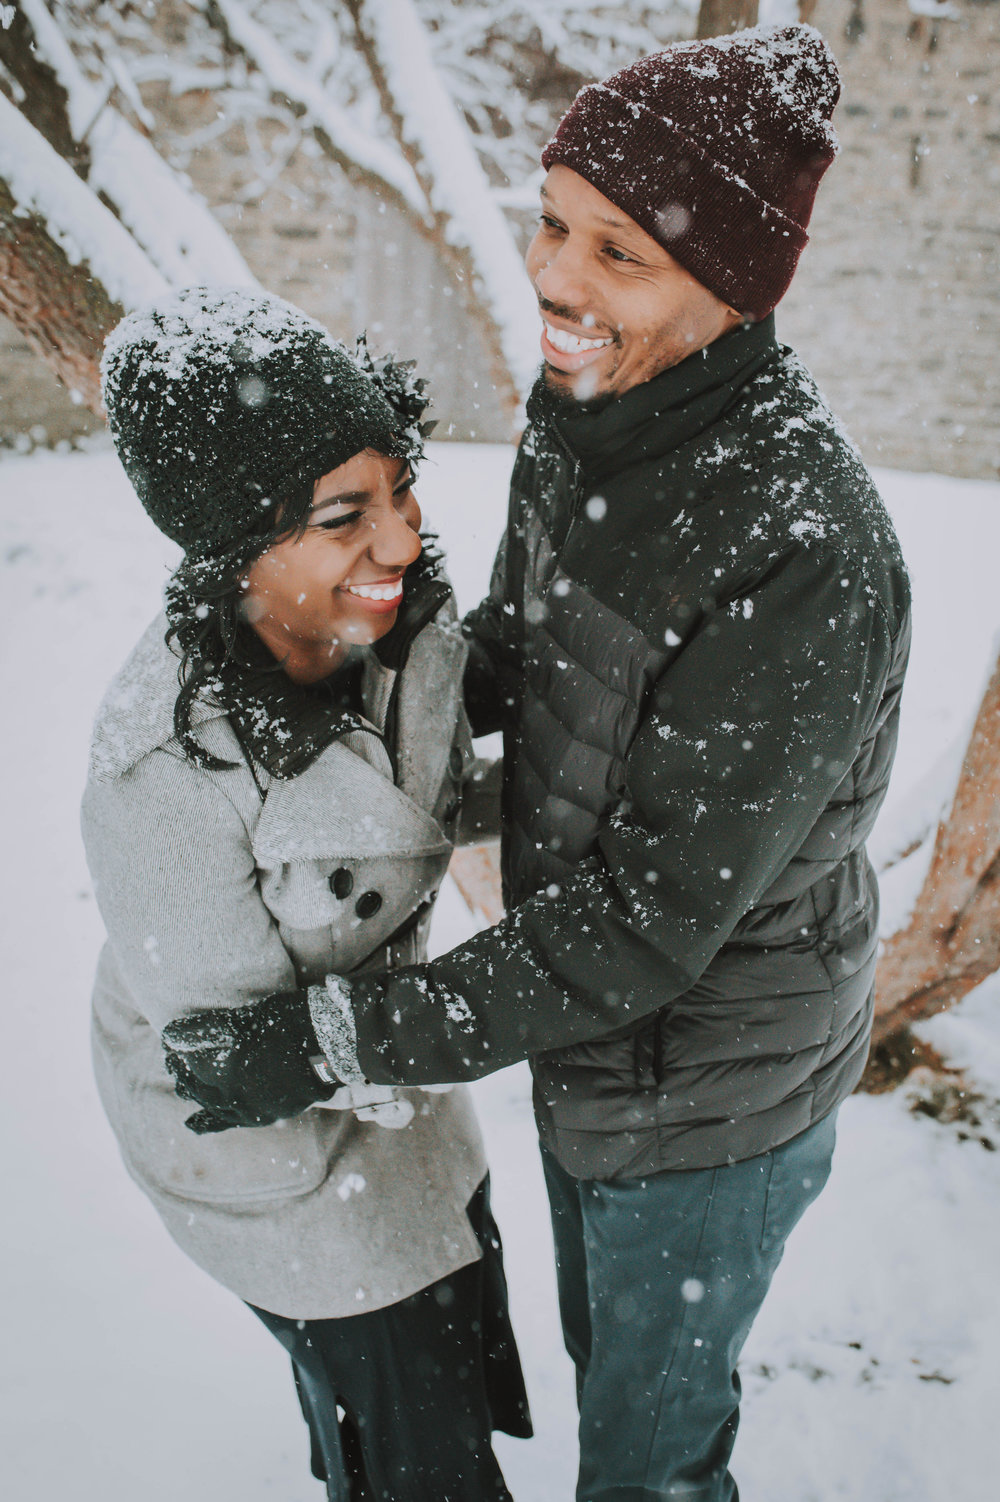 A snowy lifestyle session at Bartram's Garden